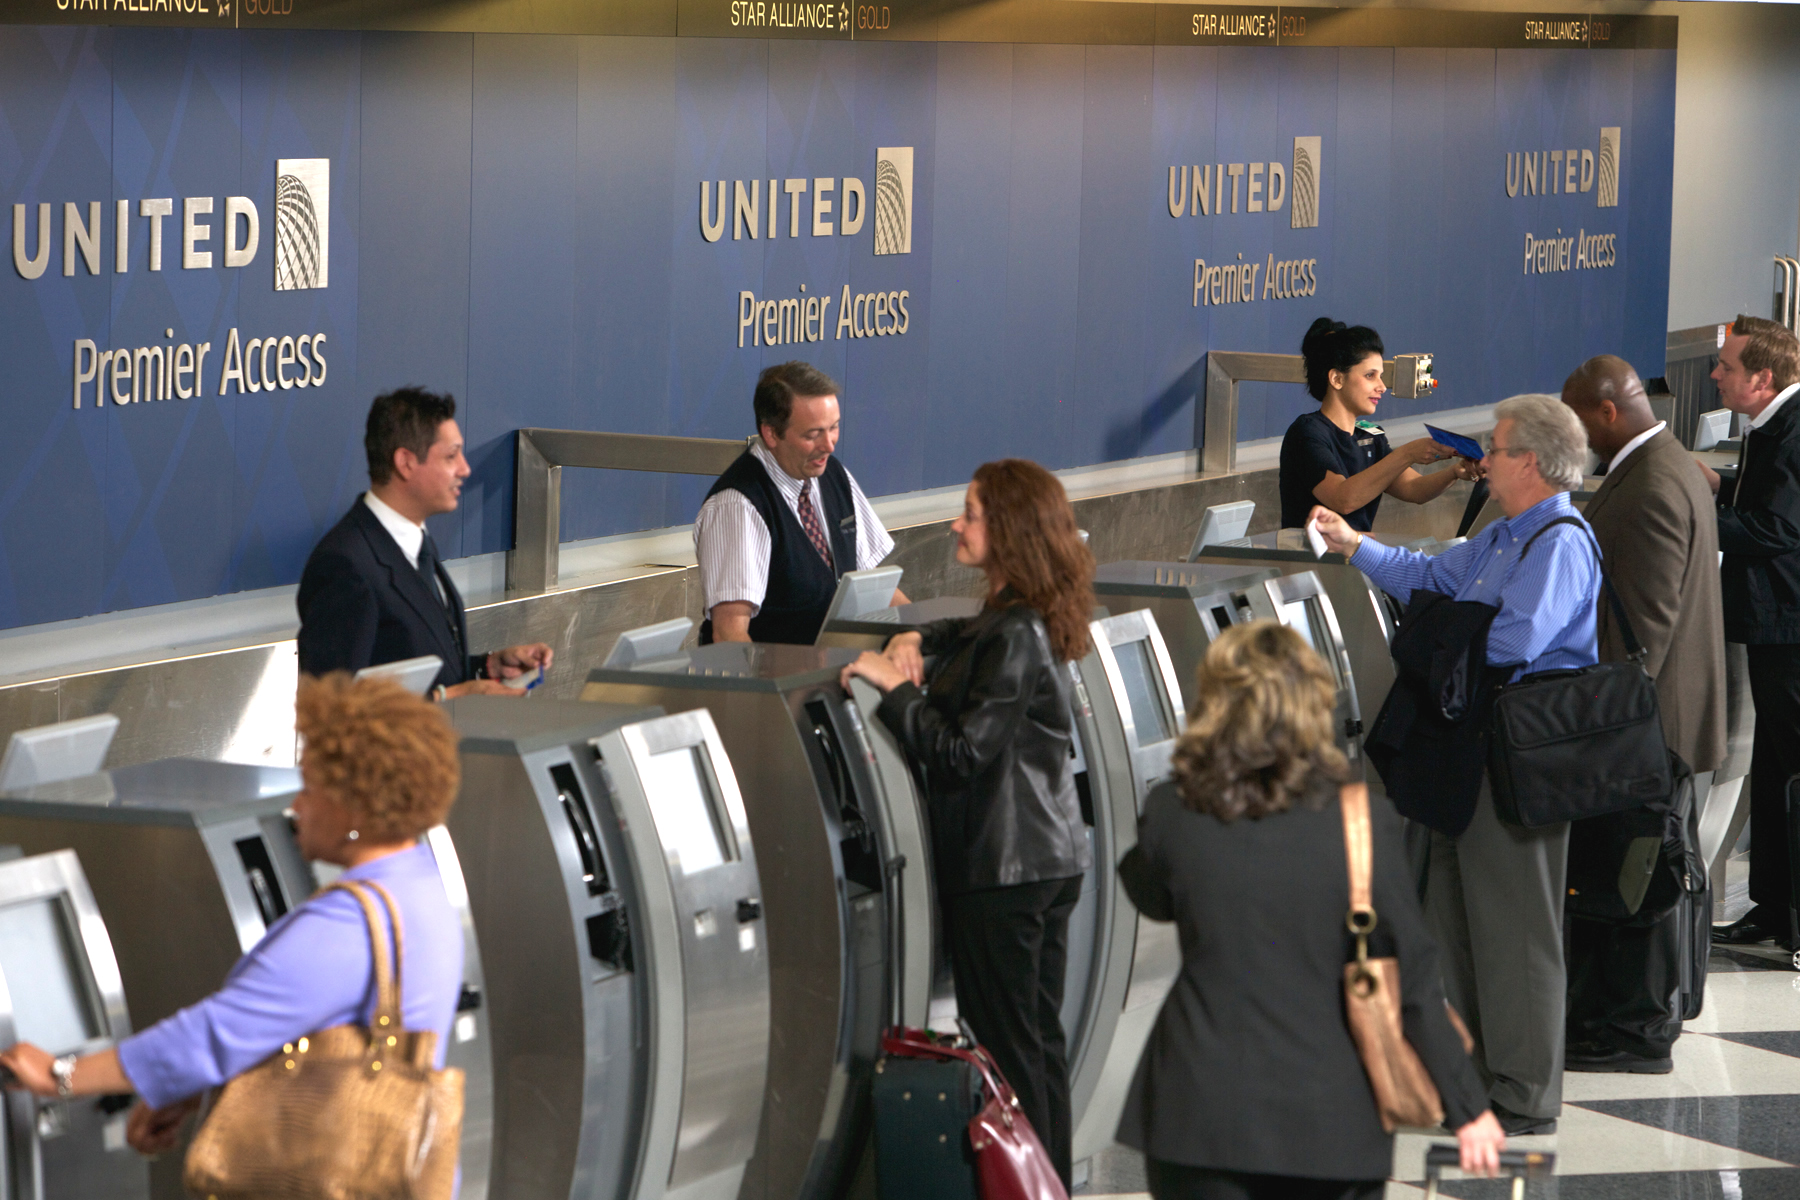 United May Delay Plans To Introduce A Basic Economy Fare